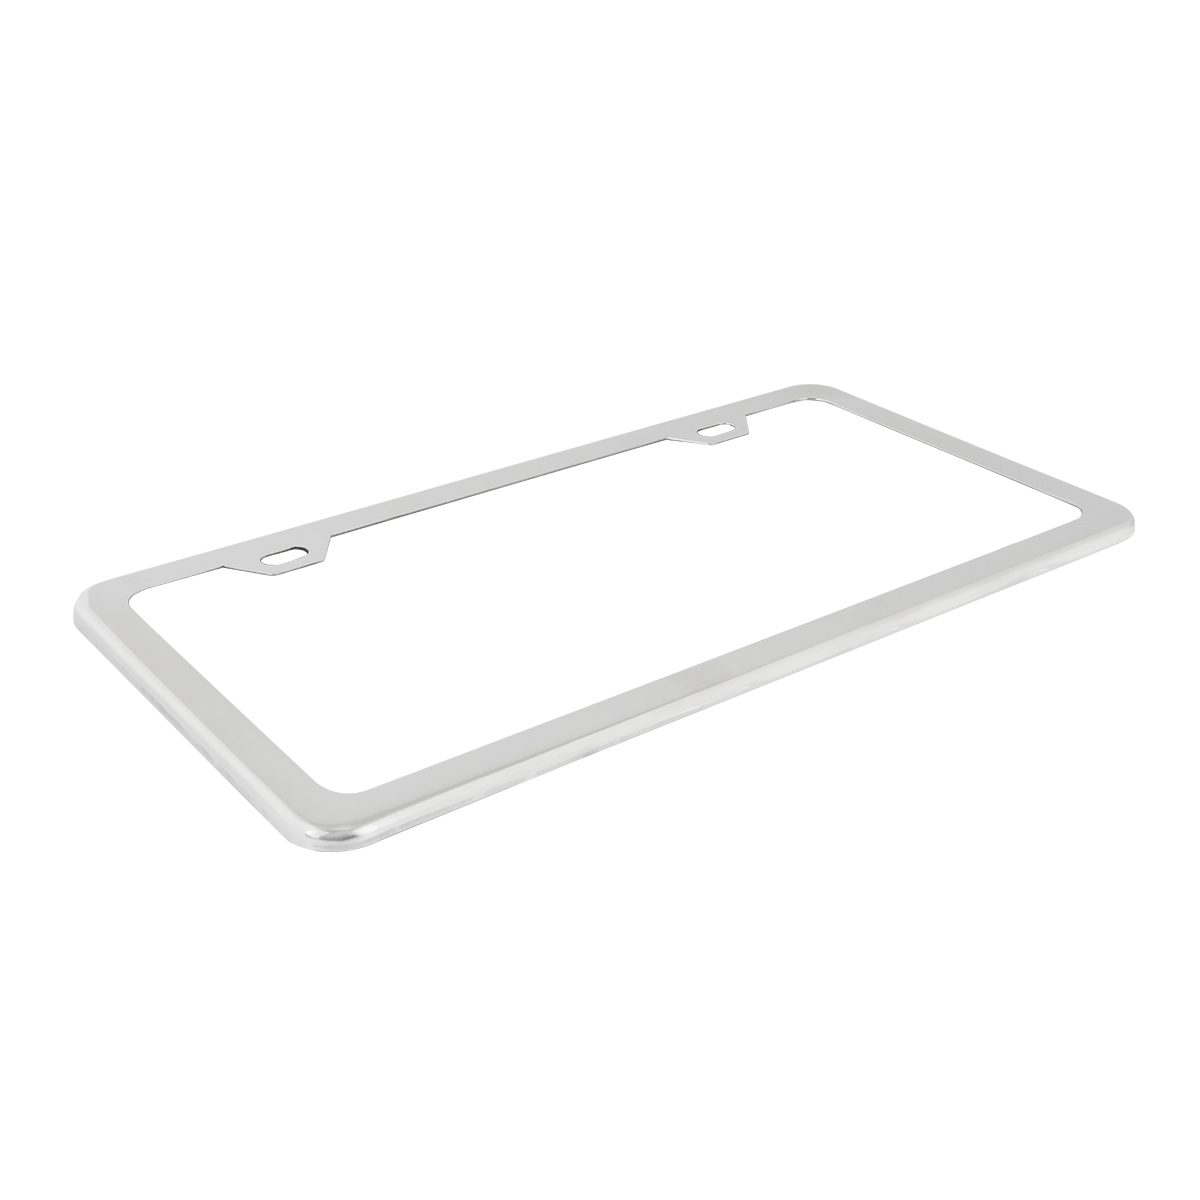 60401 Plain Polished Stainless Steel 2 Hole License Plate Frame - Top View